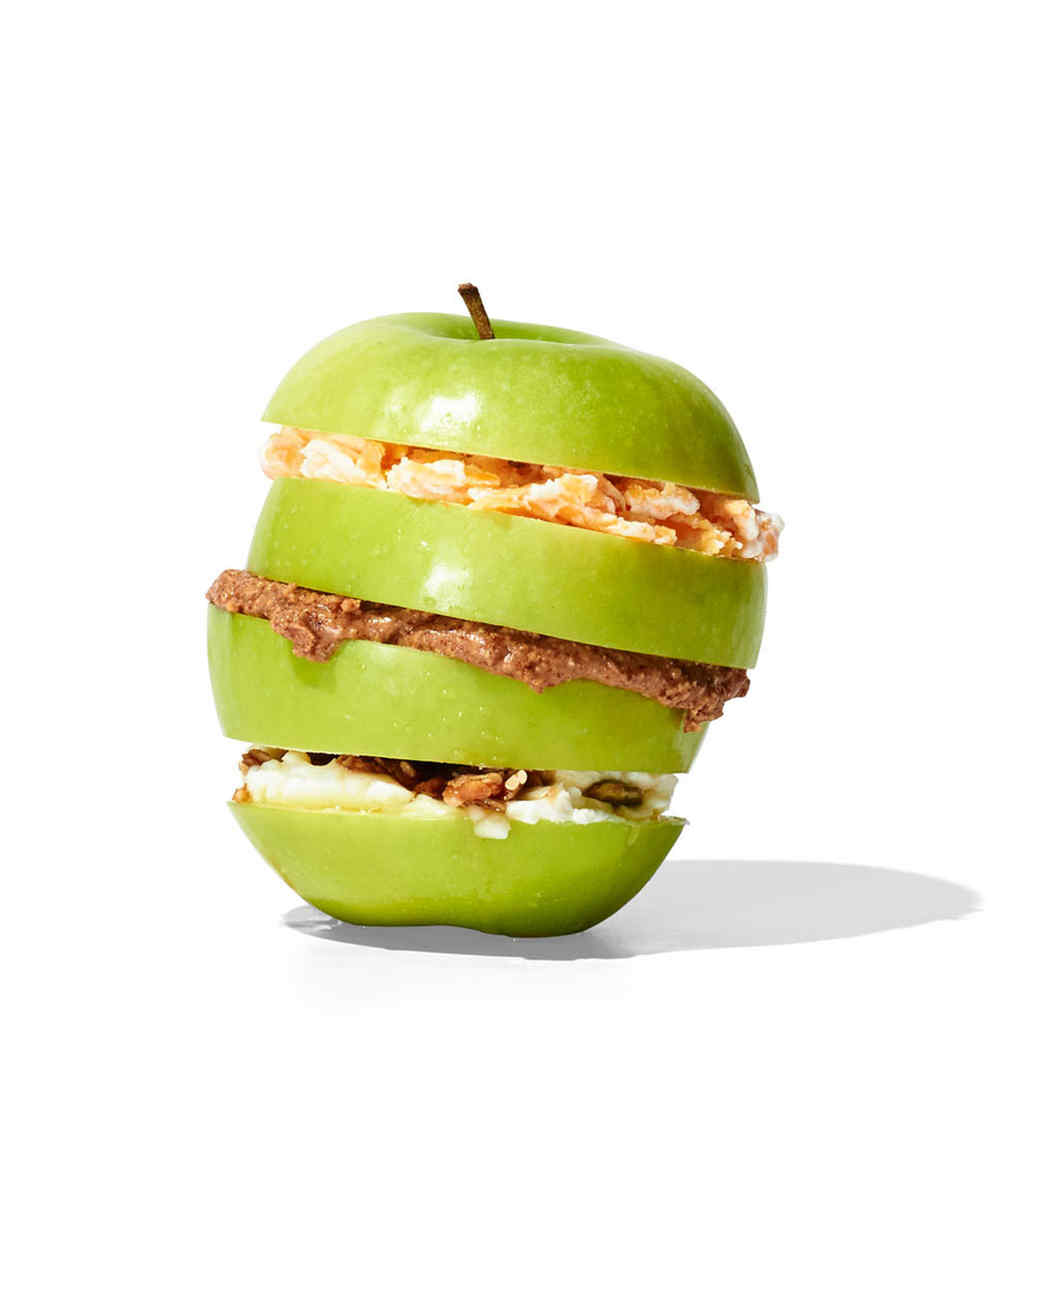 apple-snack-431-d113046-1.jpg